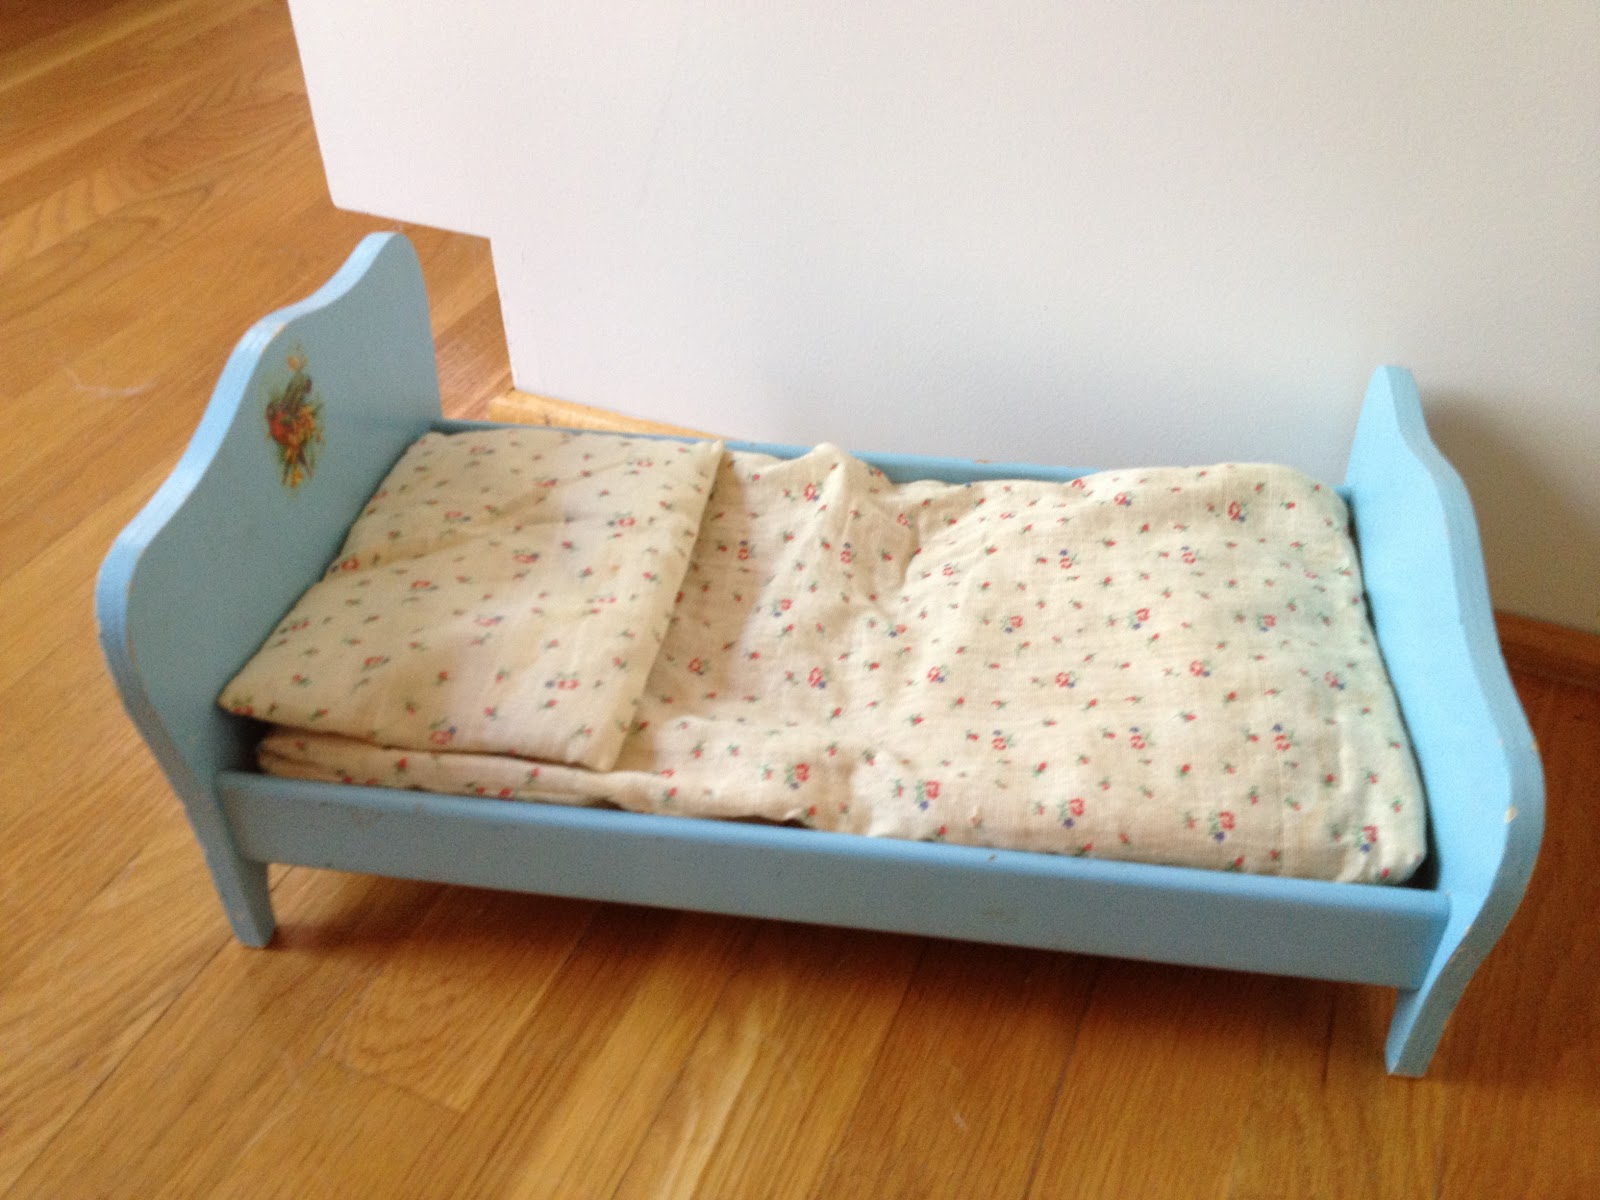 Here S A Small Doll Bed With Mattress Filled Straw And Pillow Batting It Needs Some Sheets Quilt